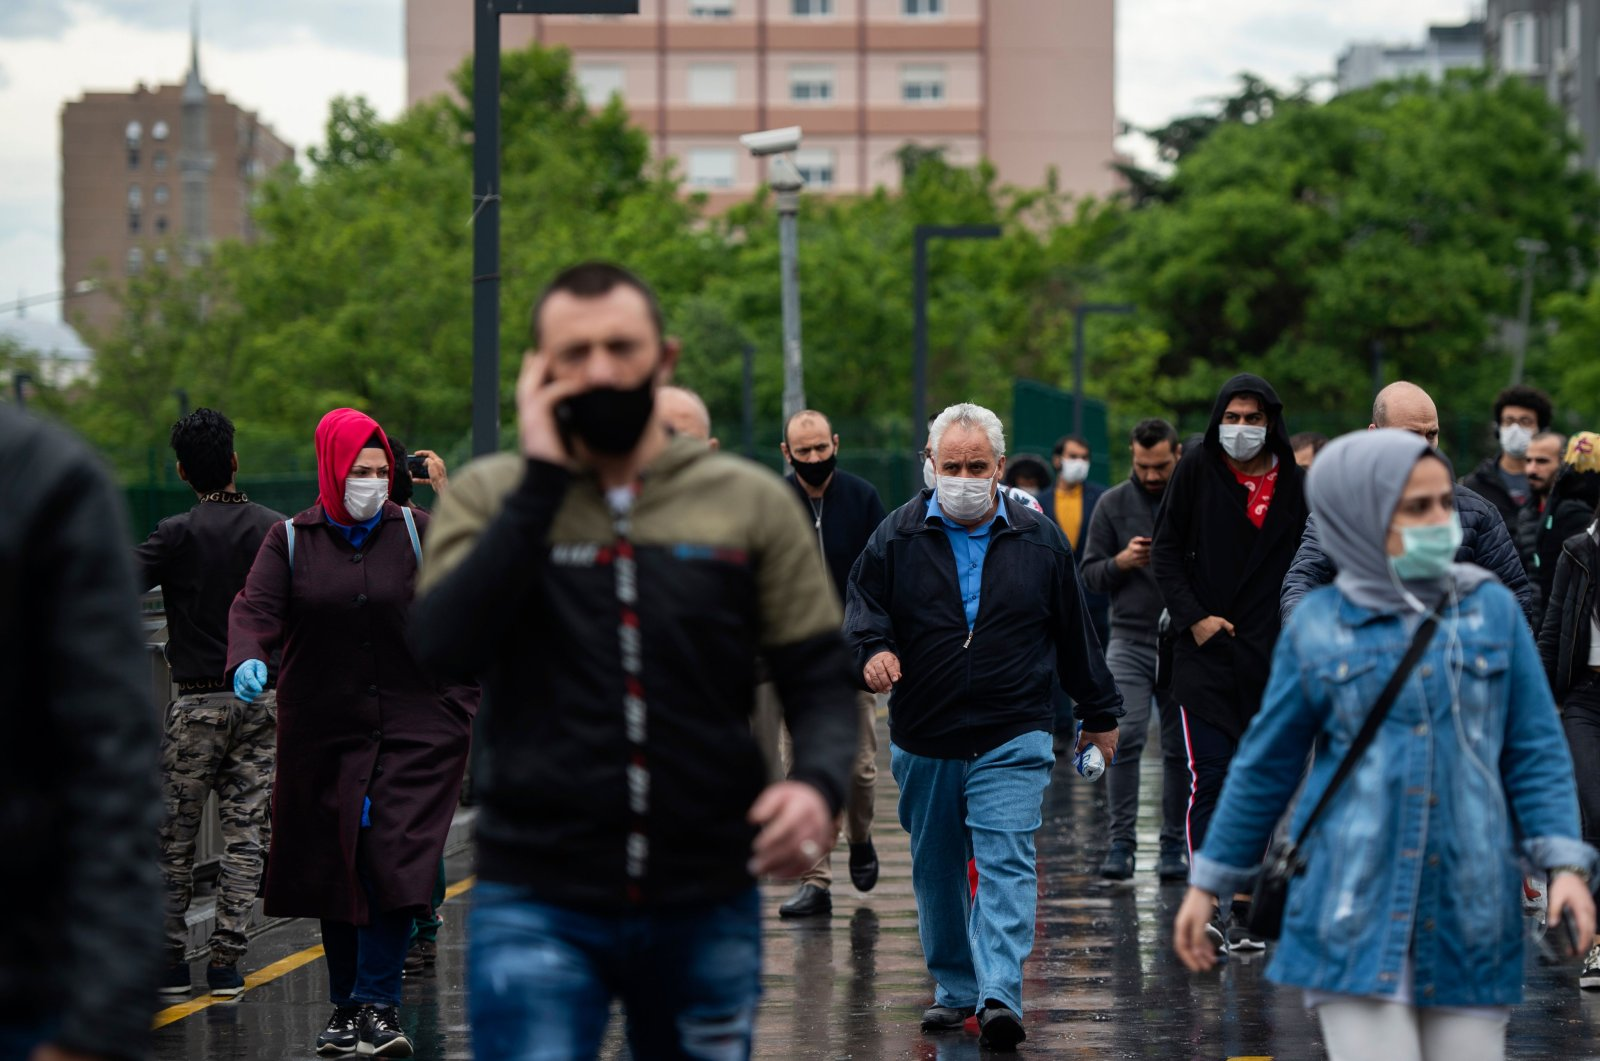 Commuters wearing protective masks walk on a street in Istanbul, Turkey, May 27, 2020. (AFP Photo)